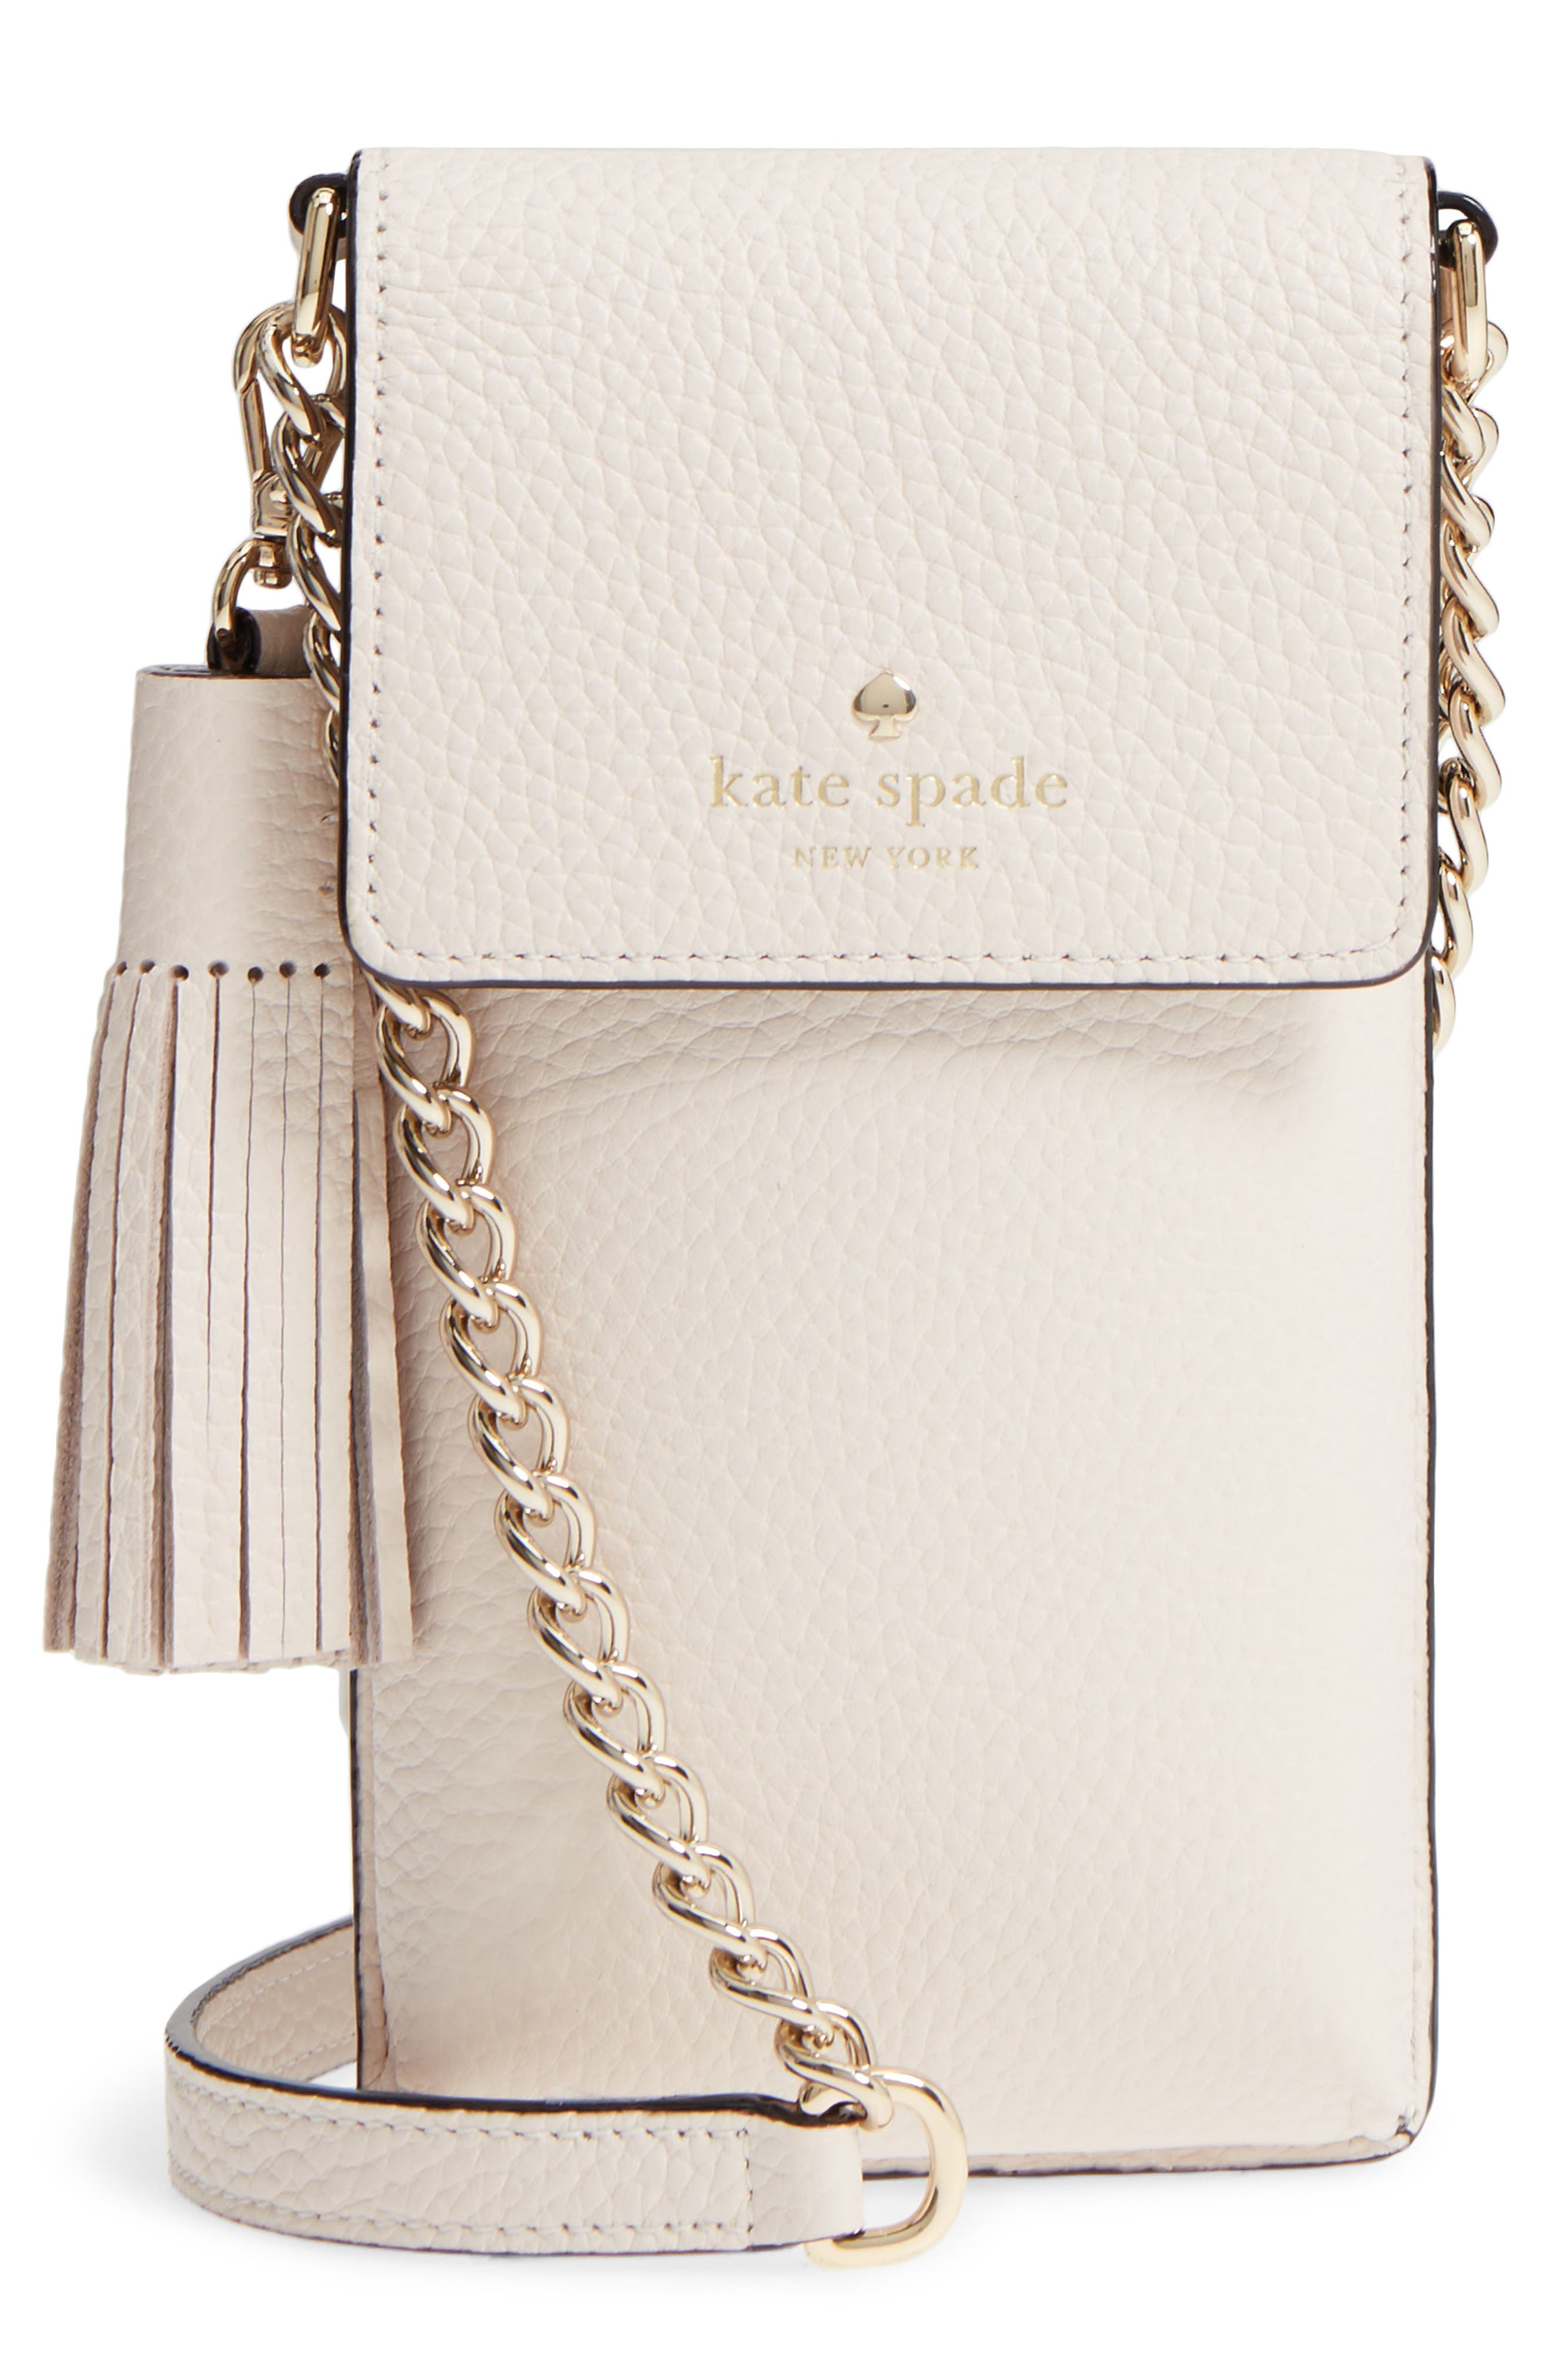 kate spade new york pebbled leather phone crossbody bag